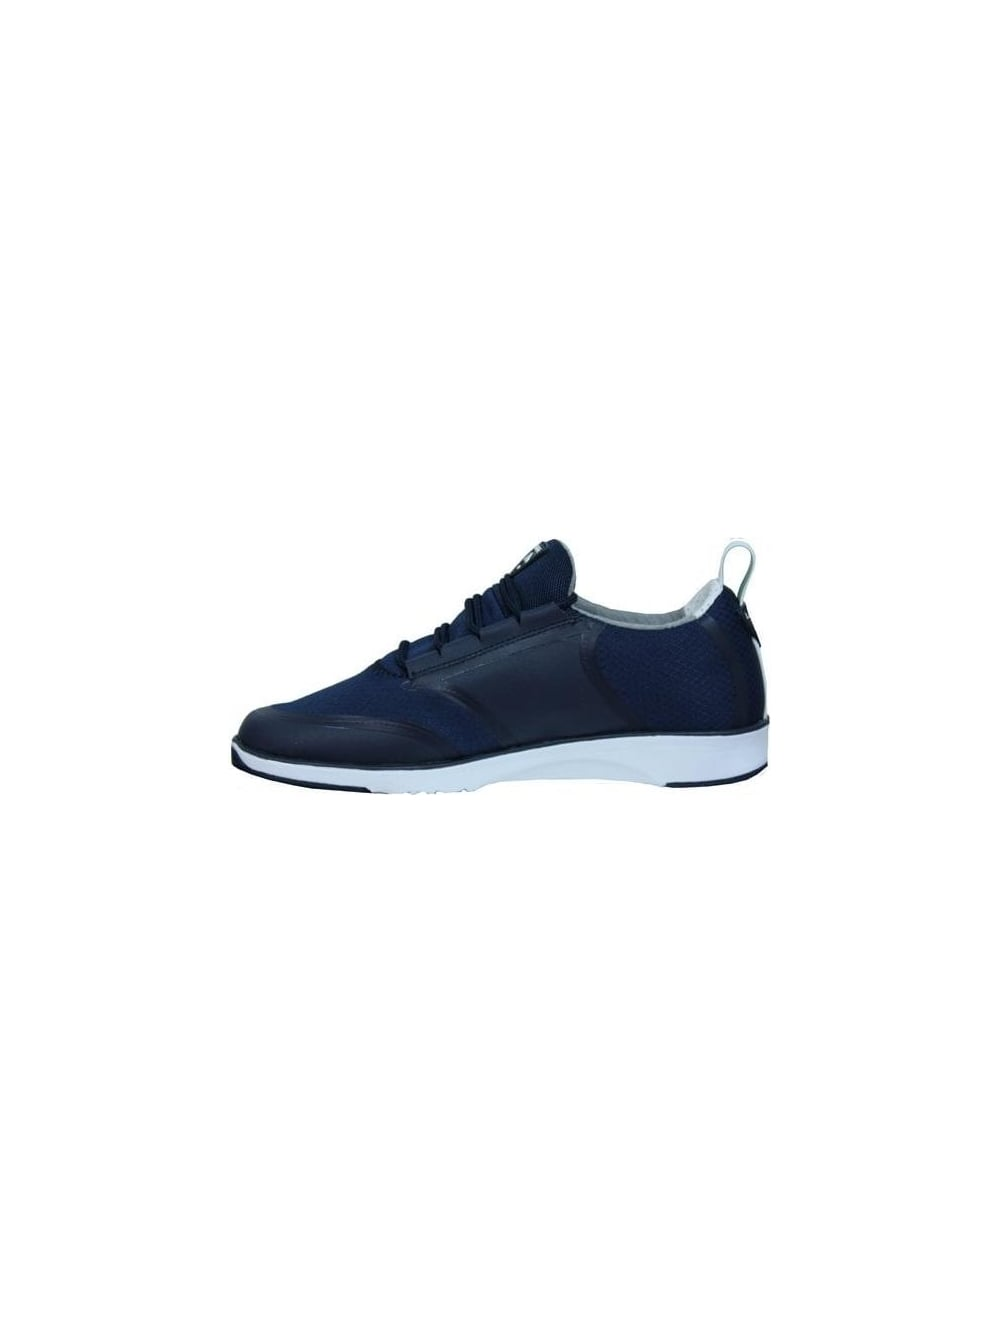 7f6784d5584fe Lacoste Light LT12 SPM Trainers in Dark Blue - Northern Threads